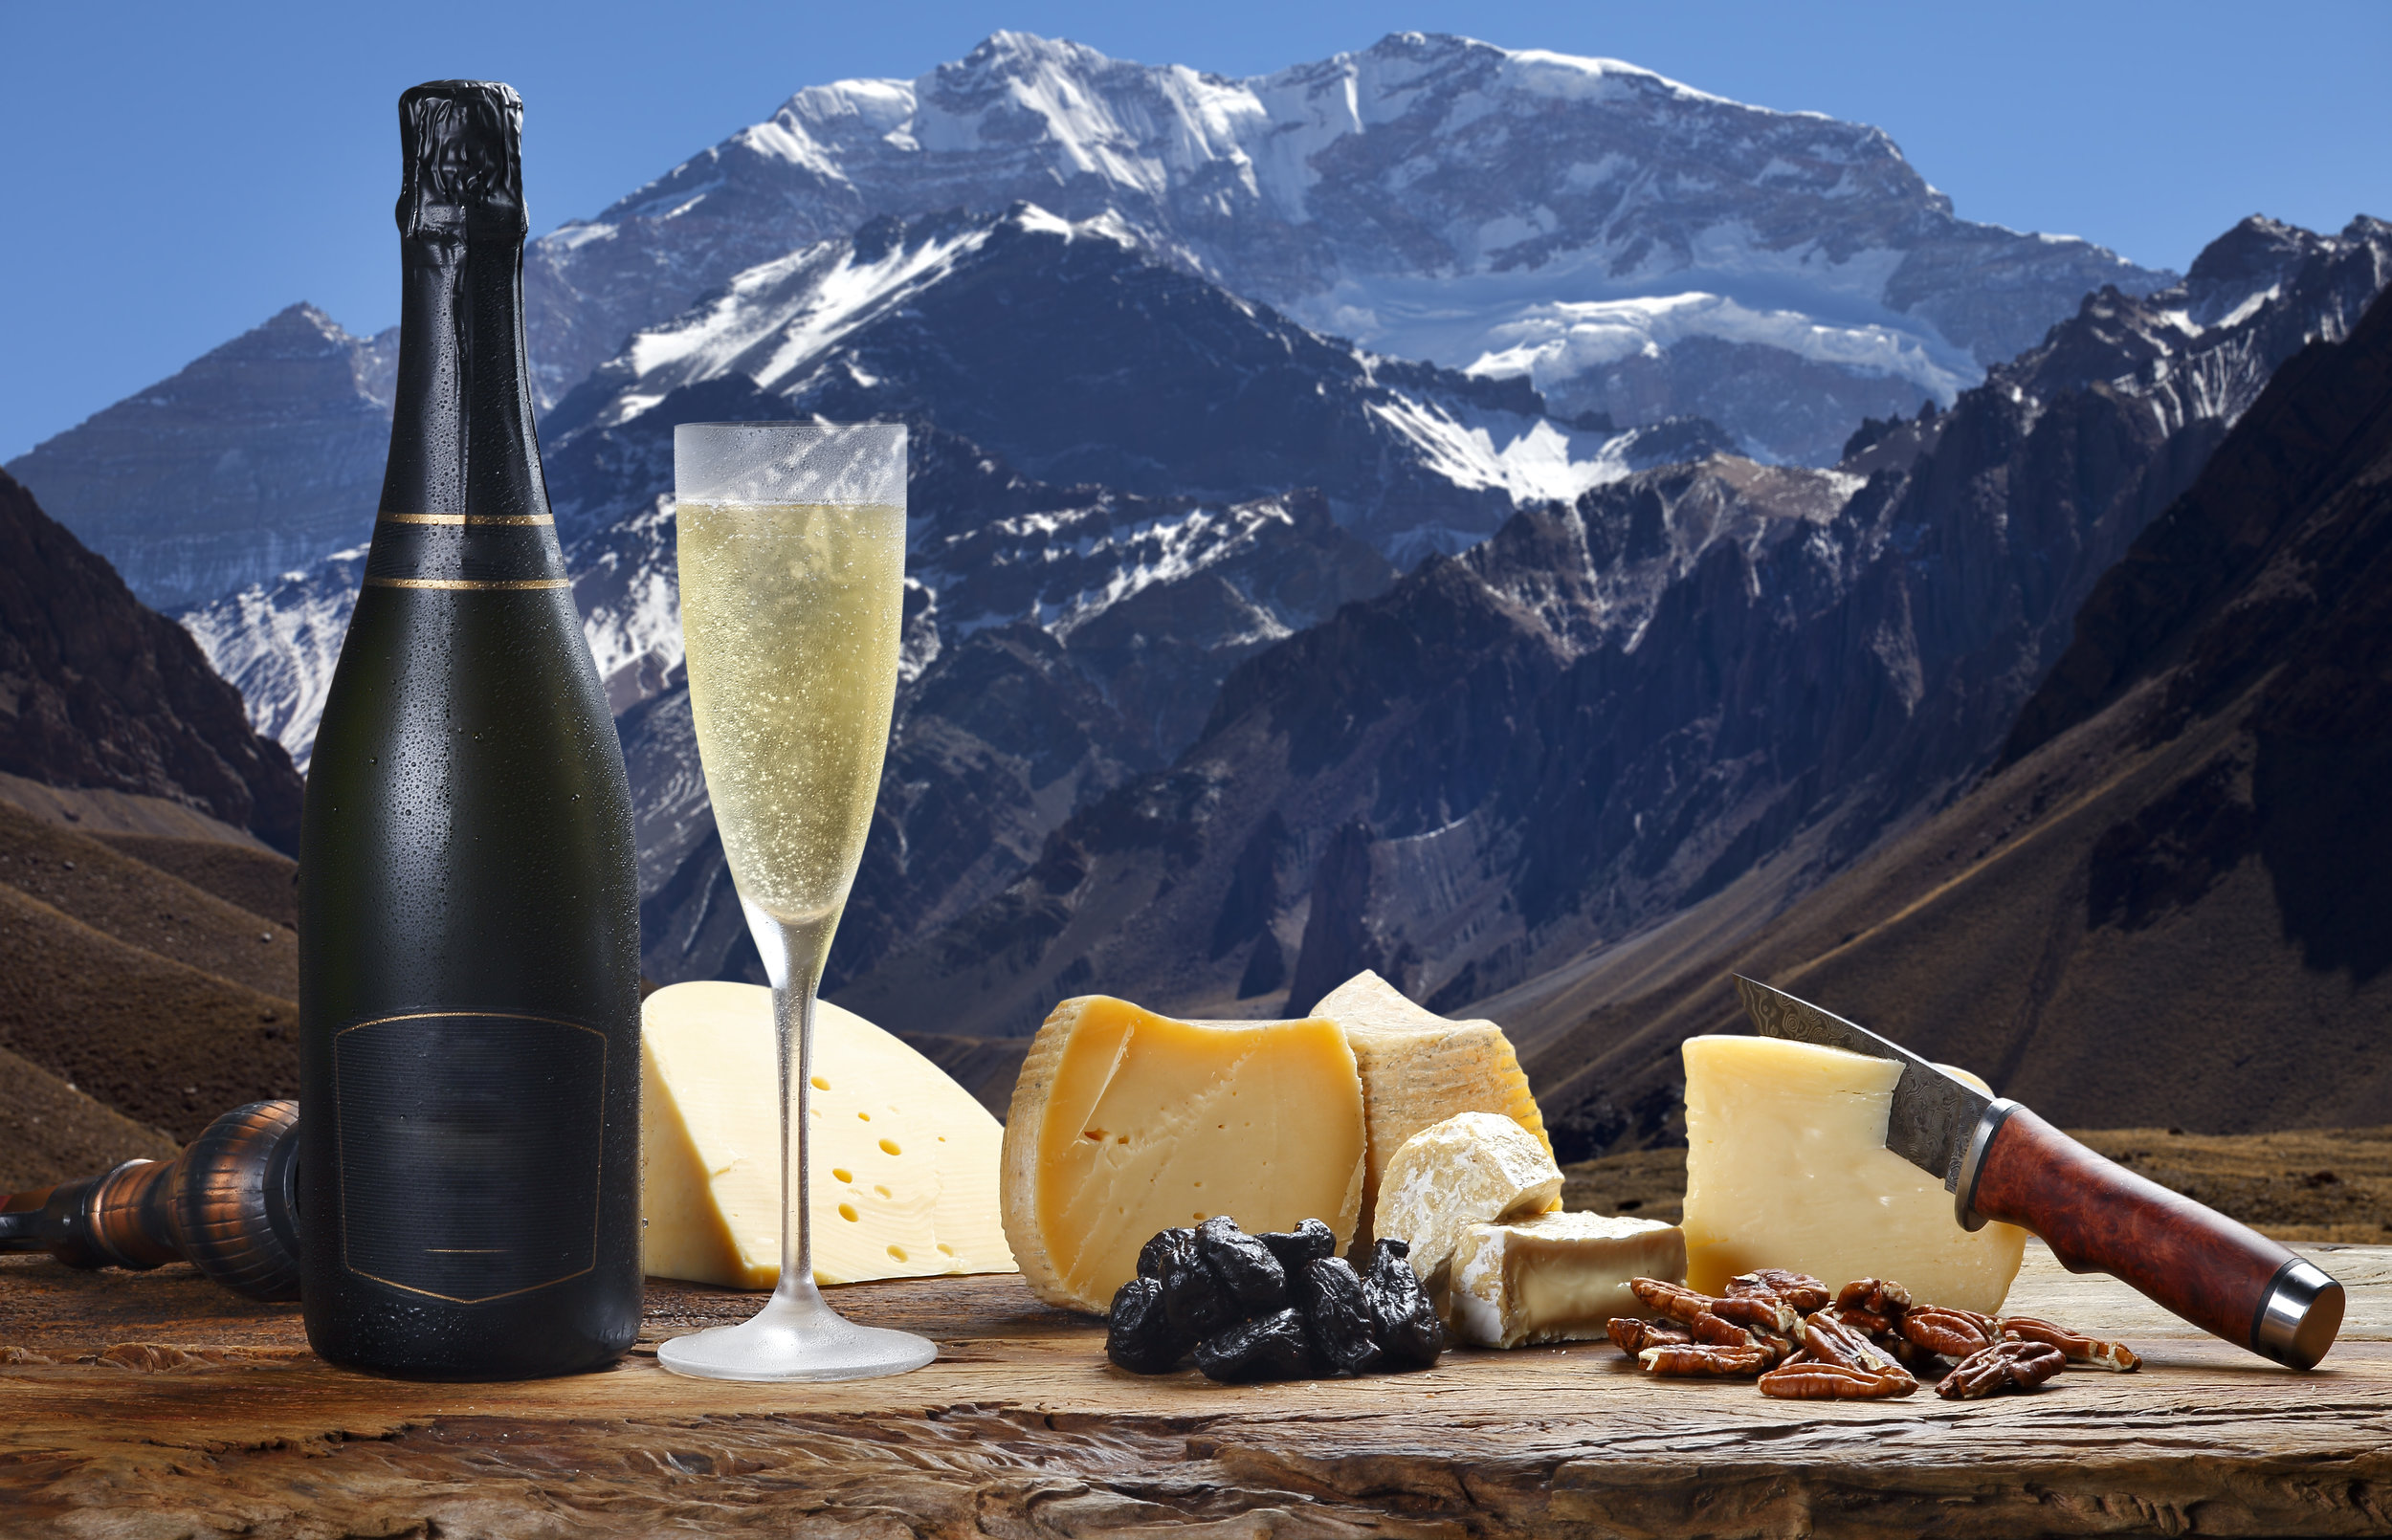 argentina_bigstock-champagne-with-delicious-chees-96065003.jpg